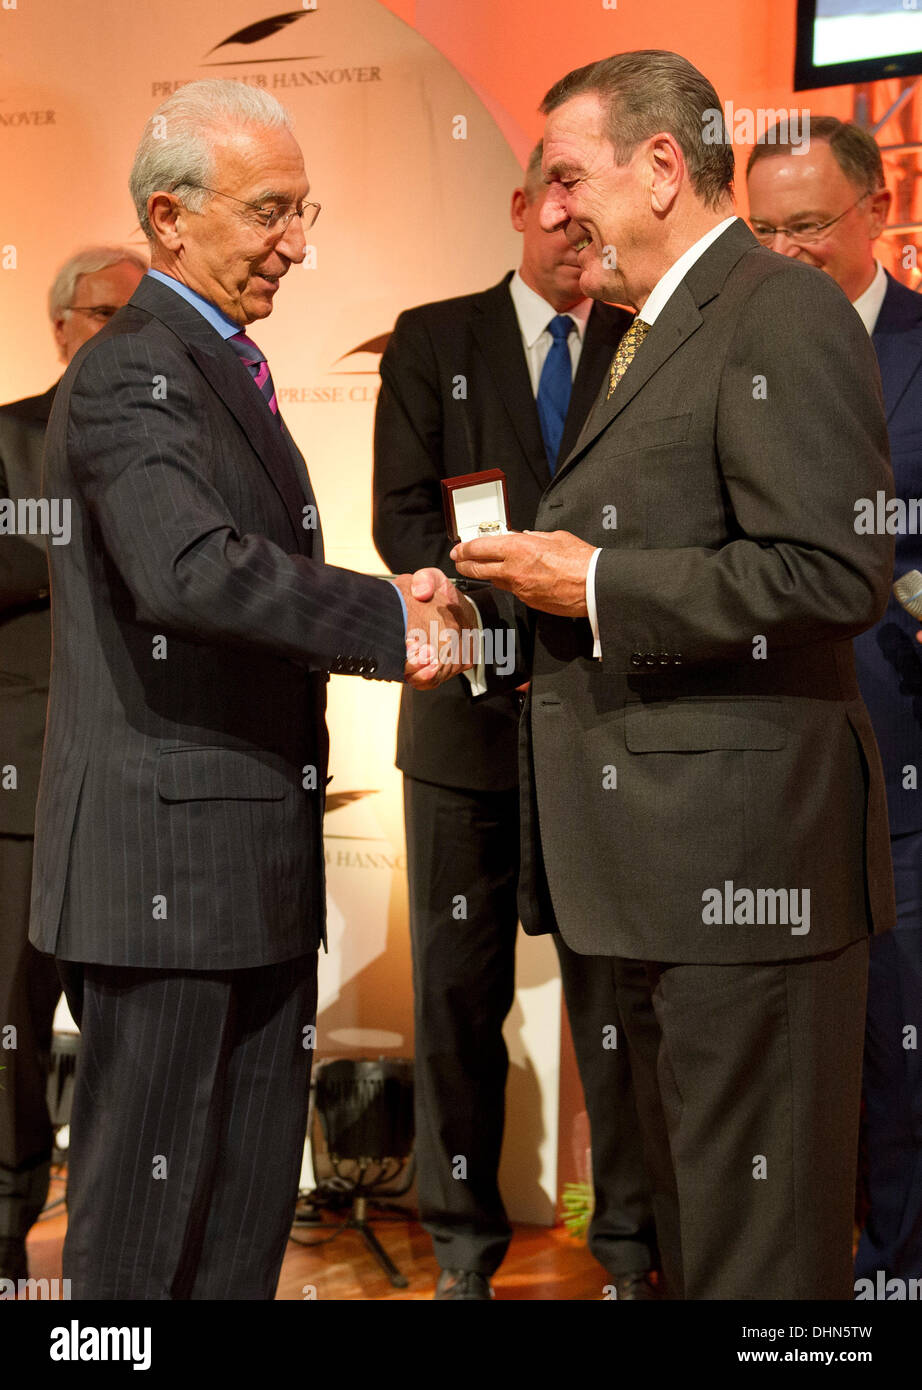 Hanover, Germany. 12th Nov, 2013. Former German Chancellor Gerhard Schroeder (SPD, R) awards brain surgeon Madjid Stock Photo